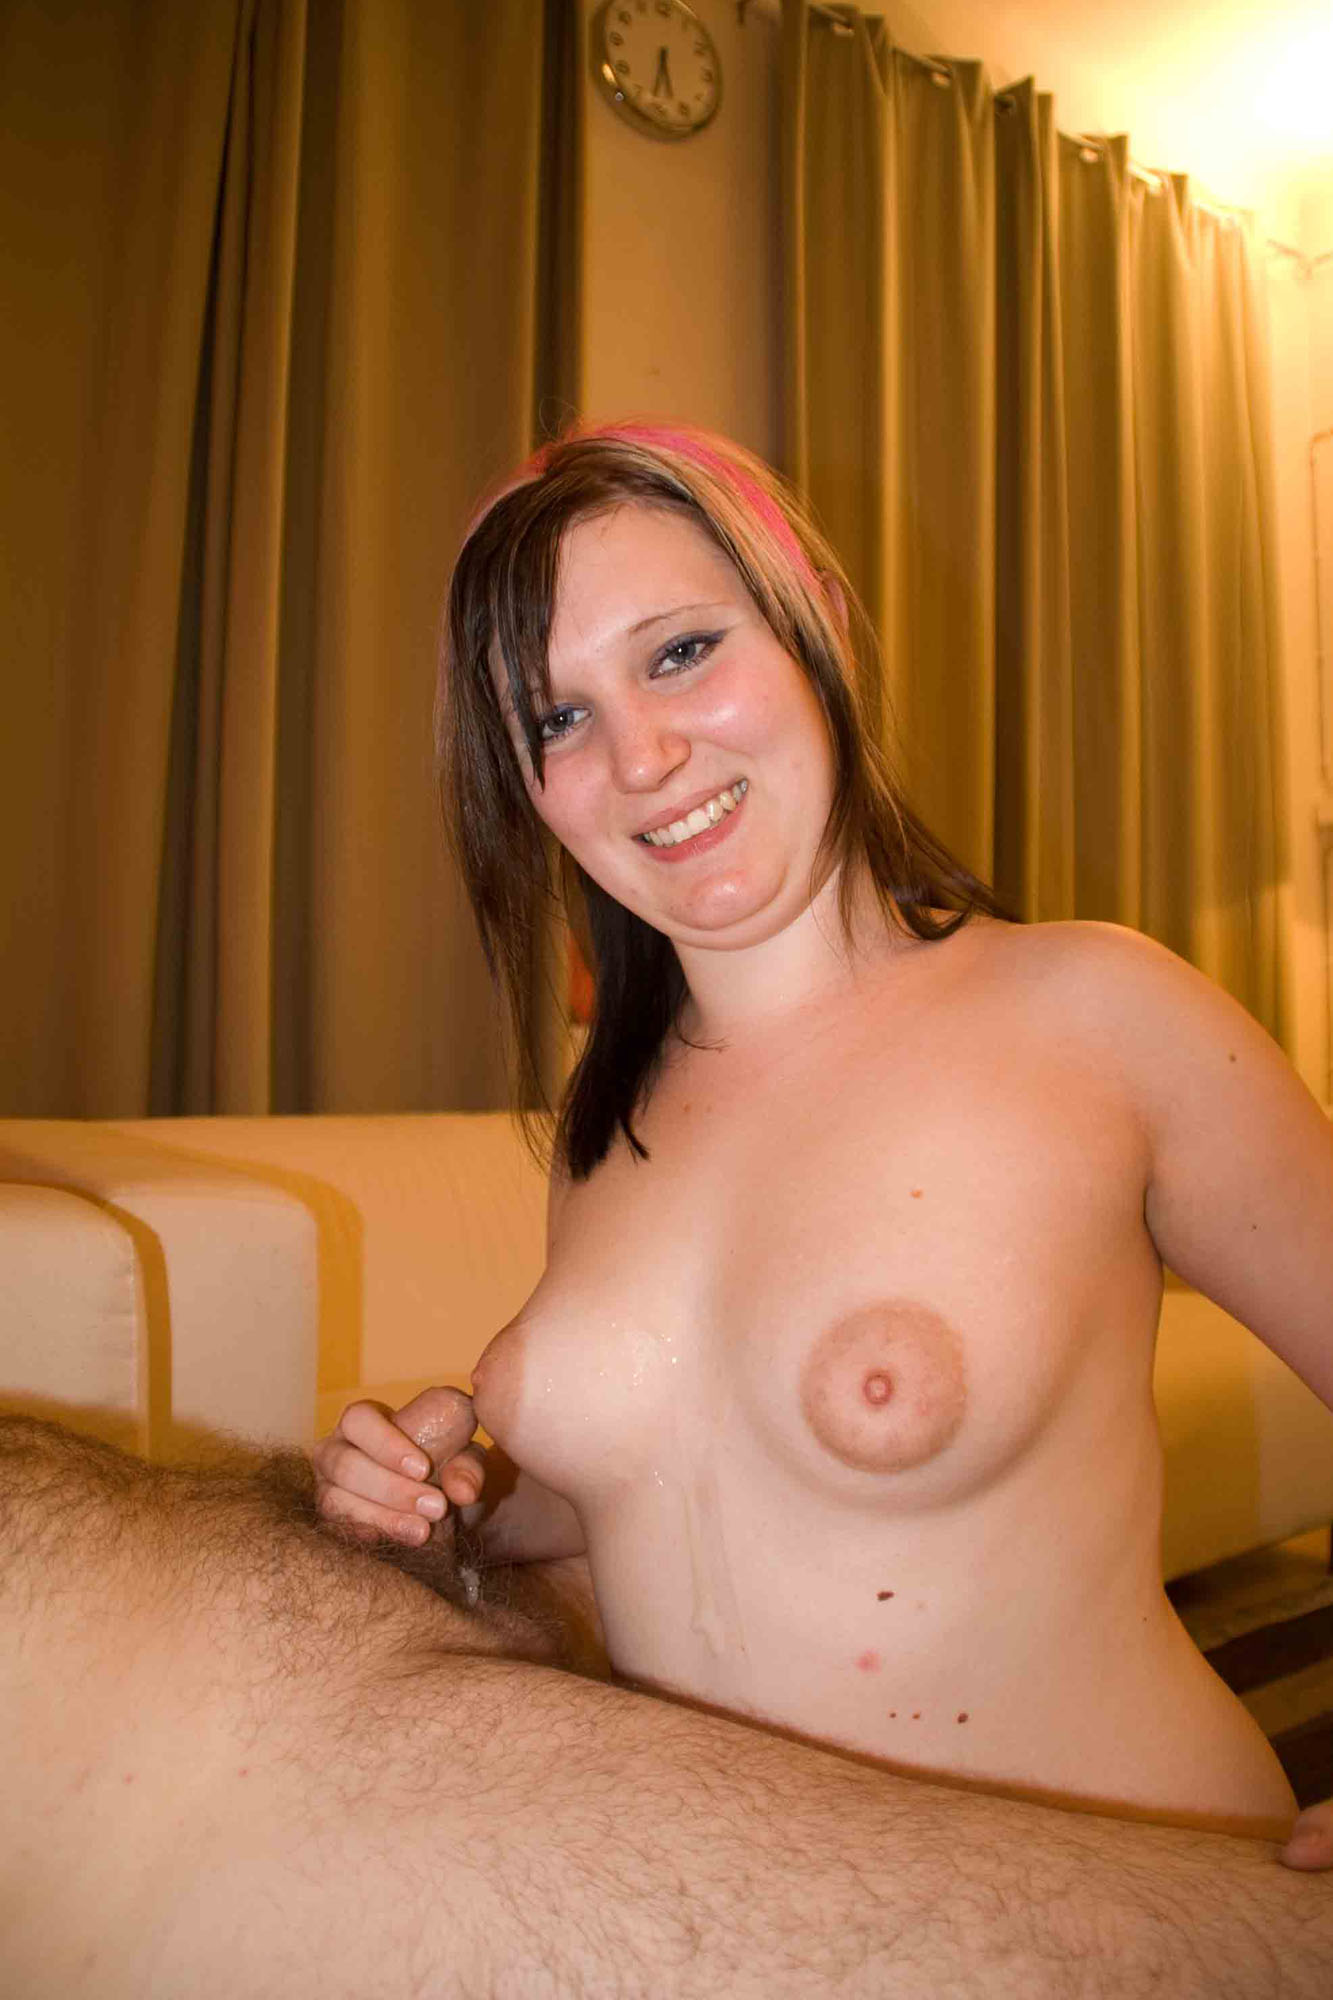 Xxx rollenspiel pics naked picture